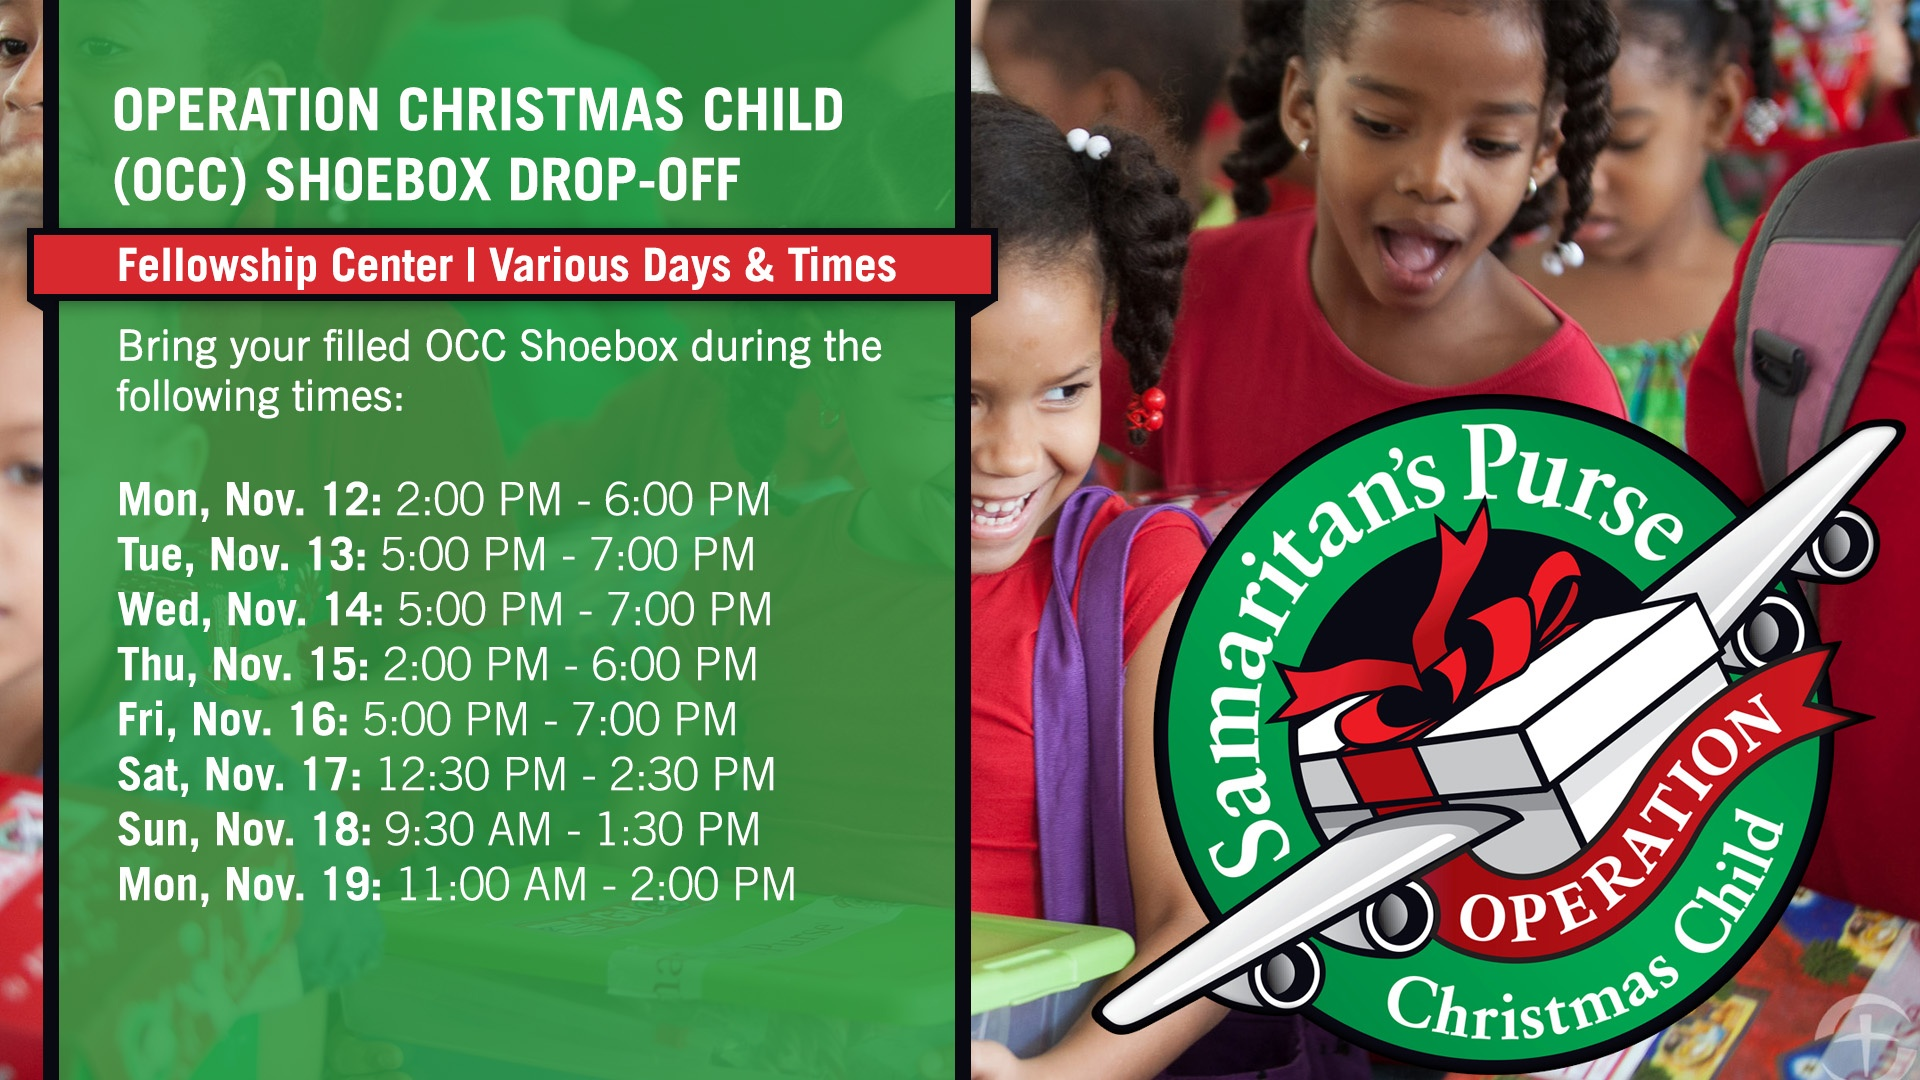 Christmas Operation Child.Operation Christmas Child Drop Off Oak Cliff Bible Fellowship